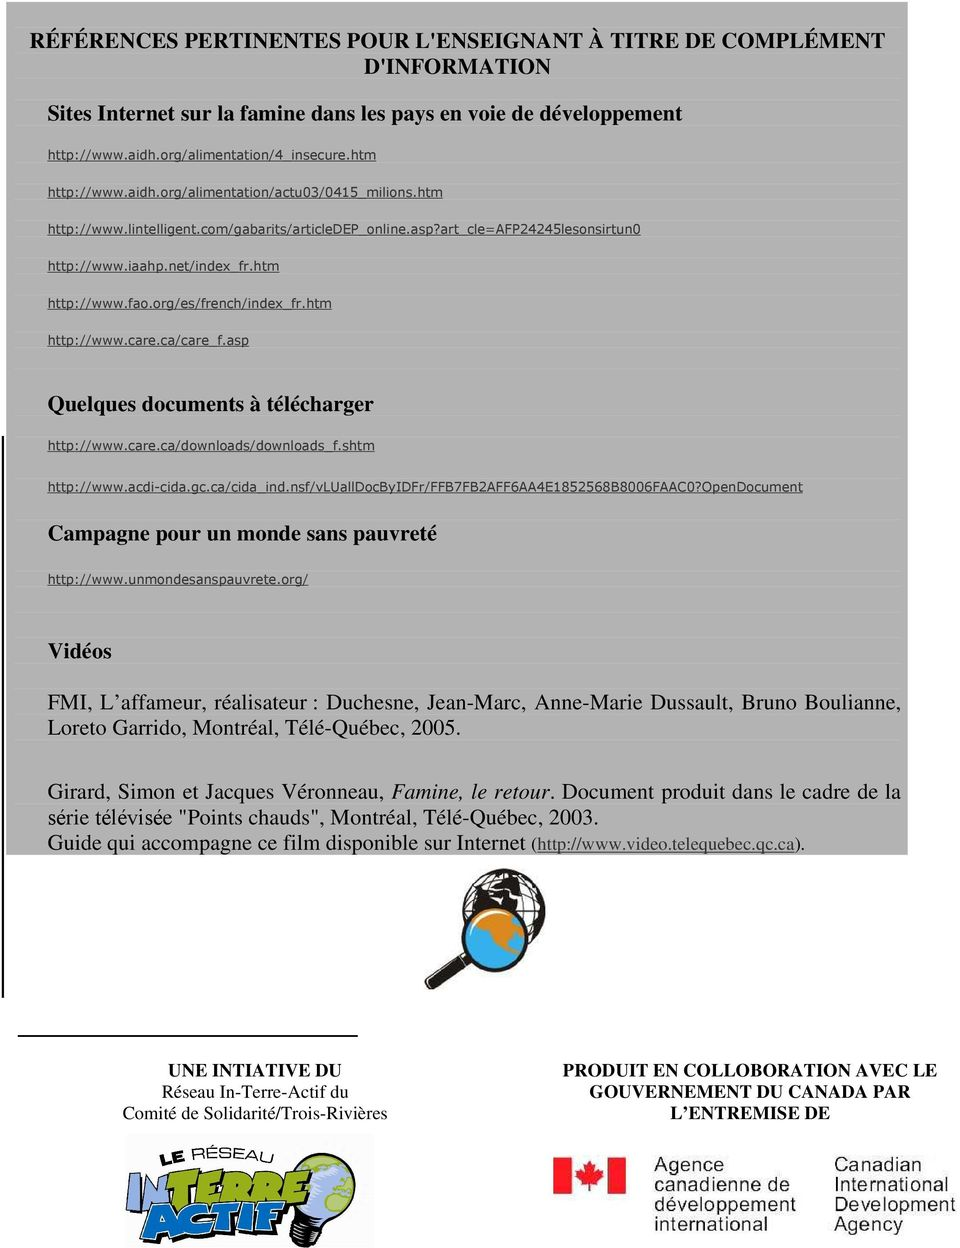 org/es/french/index_fr.htm http://www.care.ca/care_f.asp Quelques documents à télécharger http://www.care.ca/downloads/downloads_f.shtm http://www.acdi-cida.gc.ca/cida_ind.